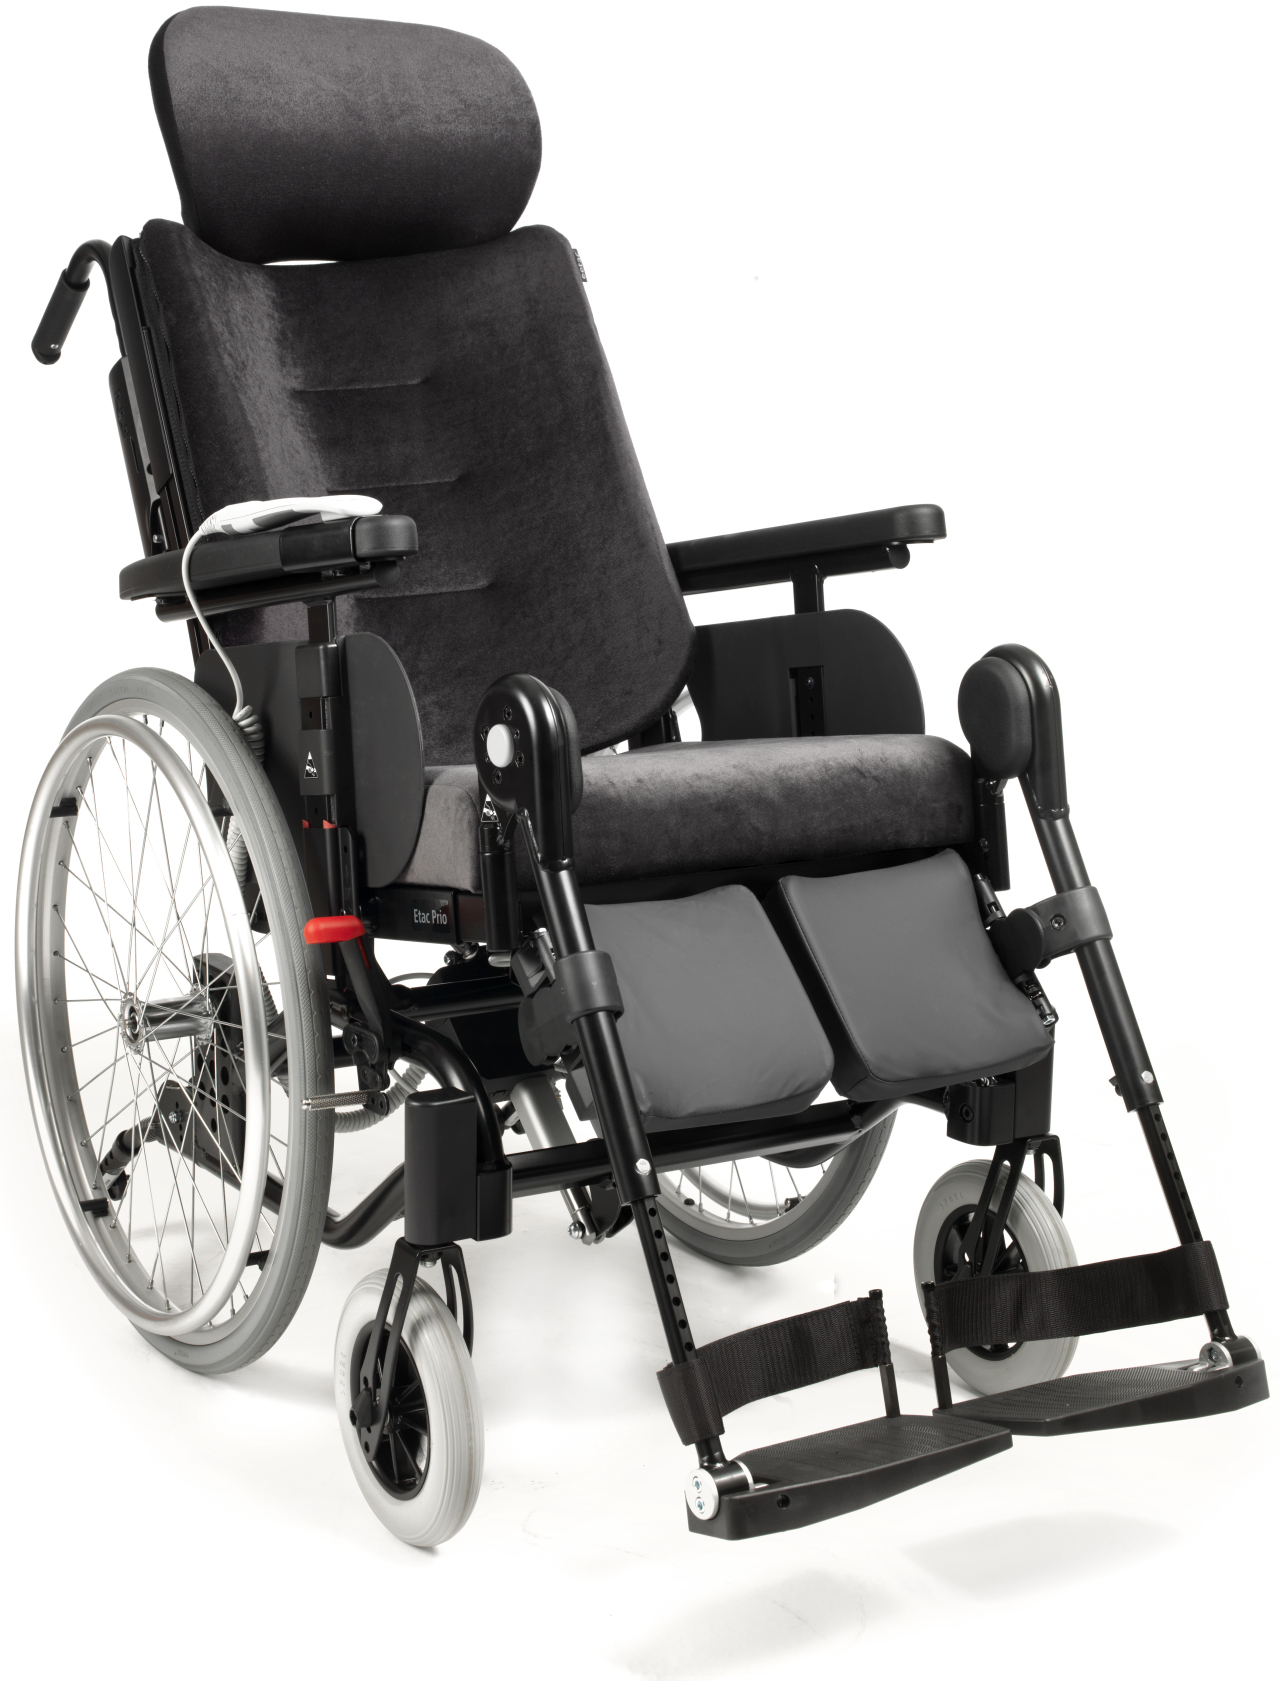 Etac Prio Electric Tilt multi-functional wheelchair